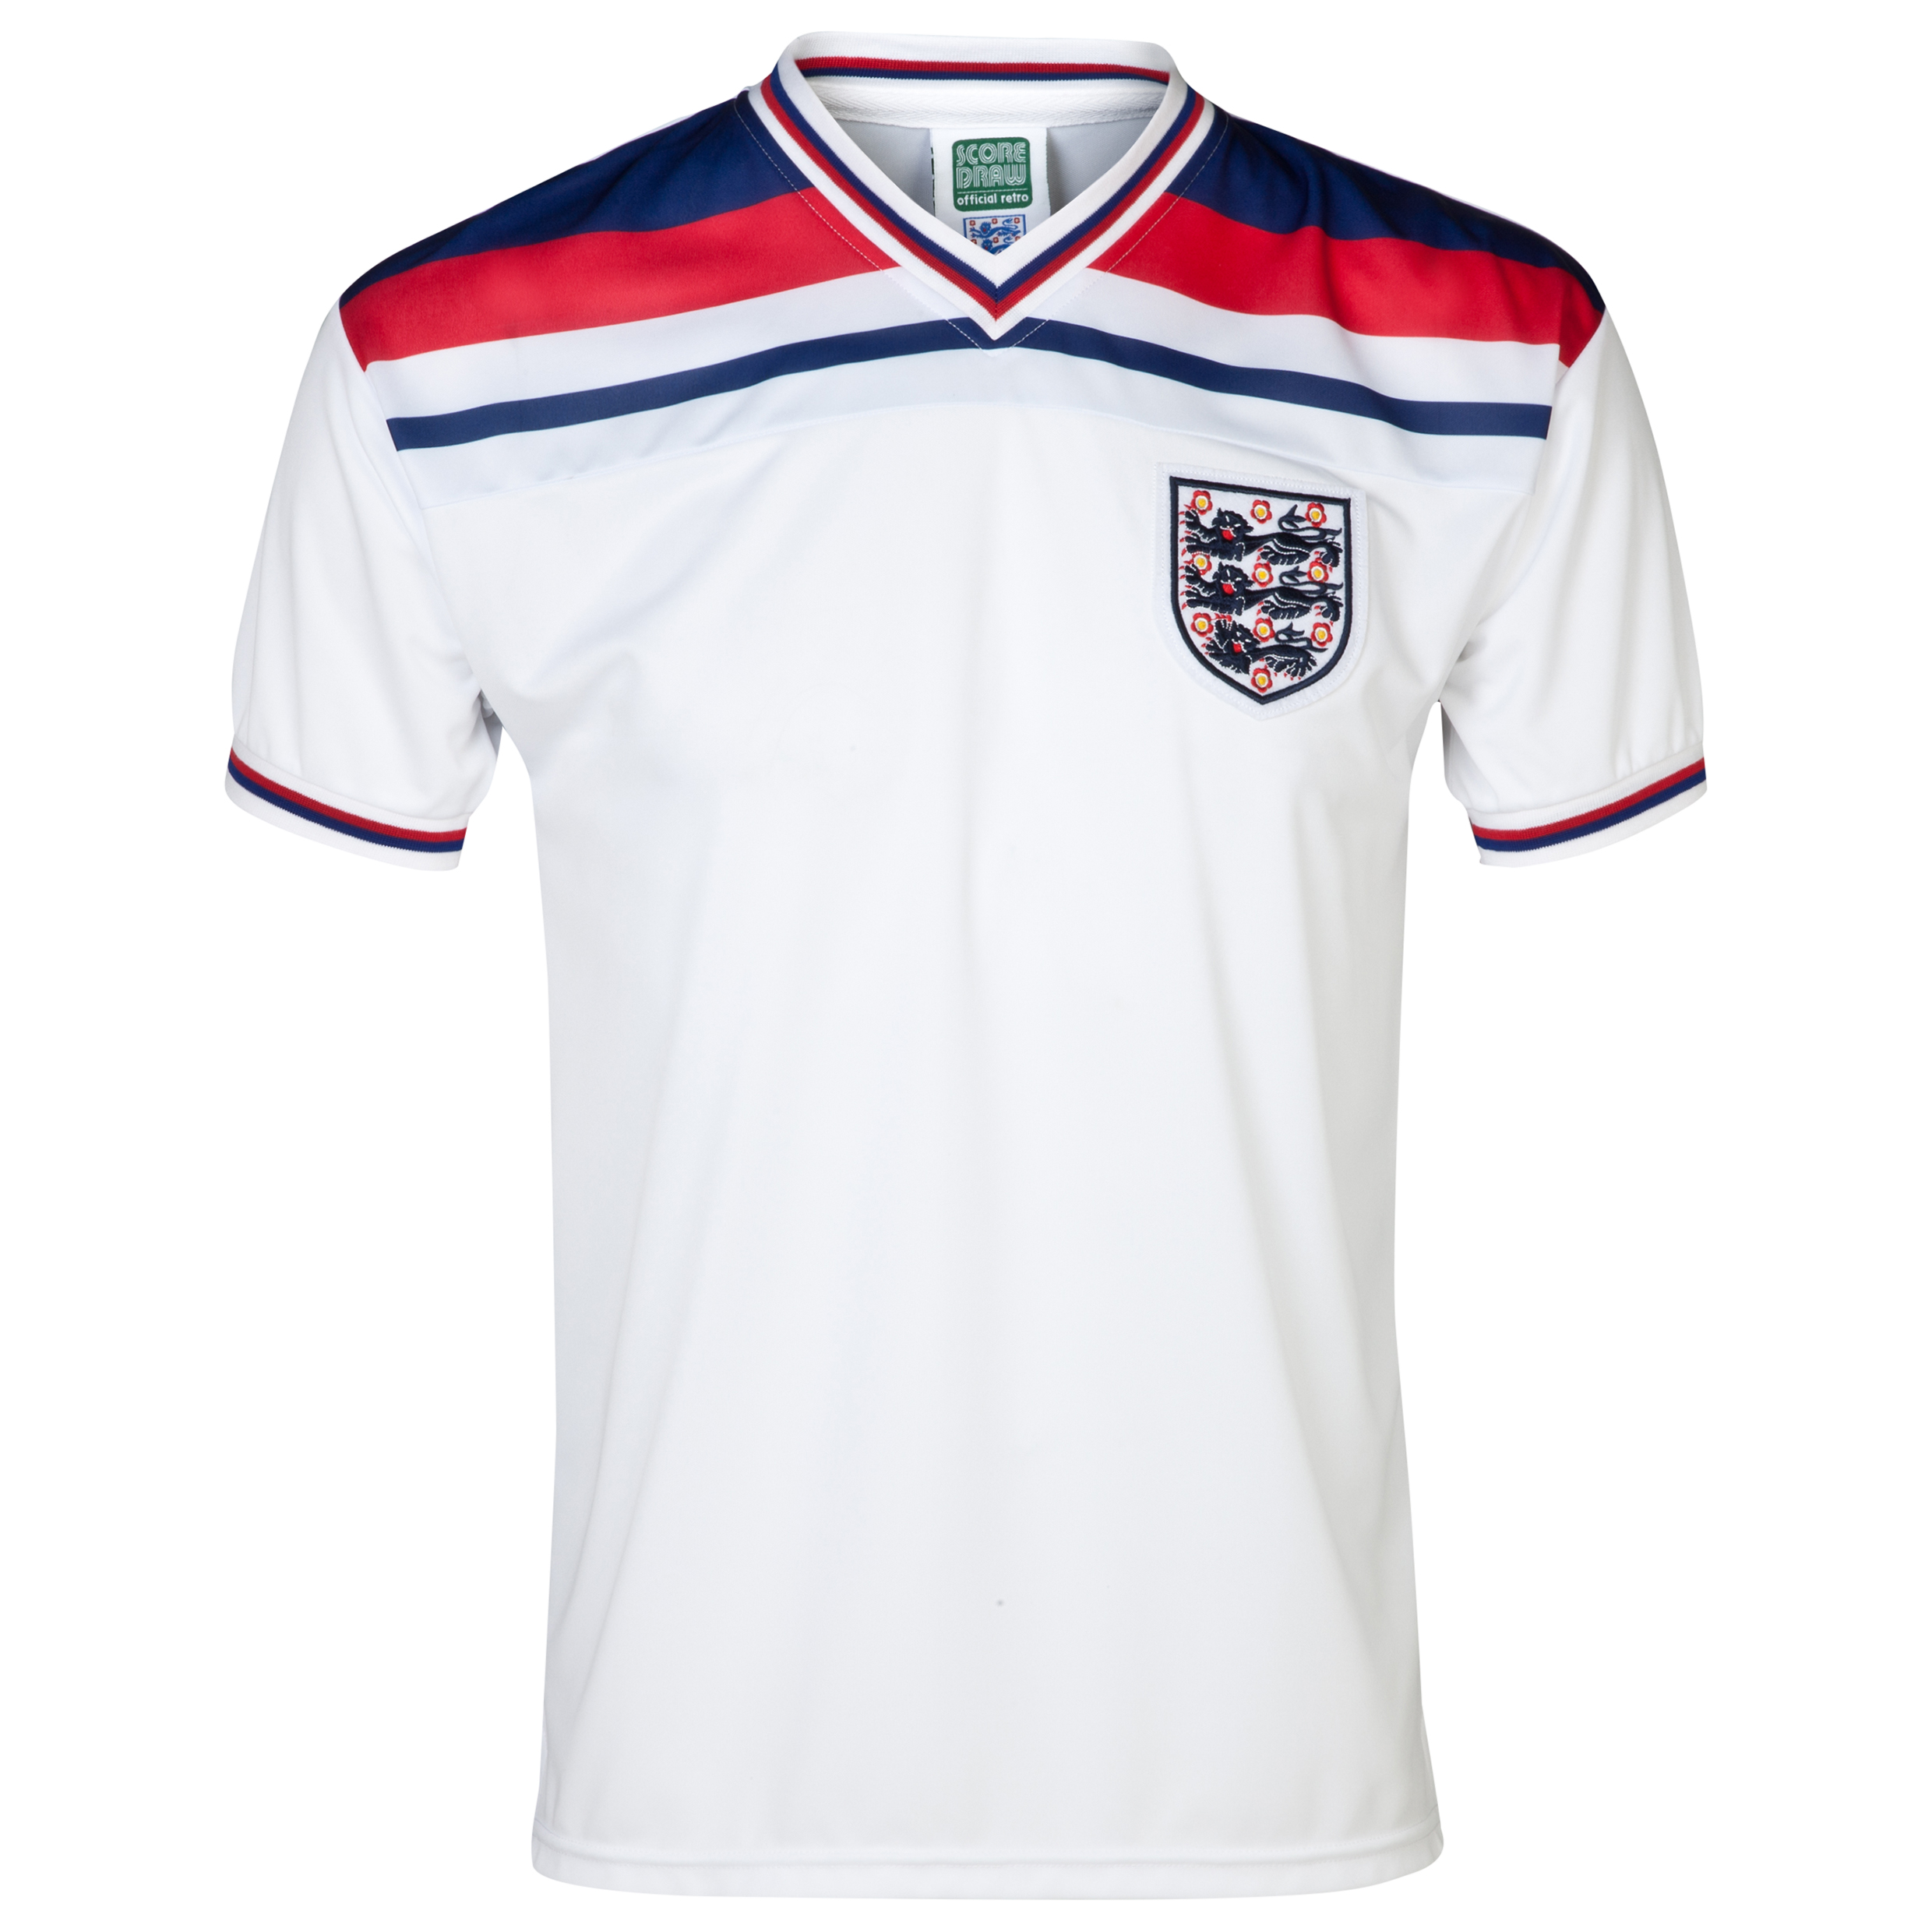 England 1982 World Cup Finals Shirt